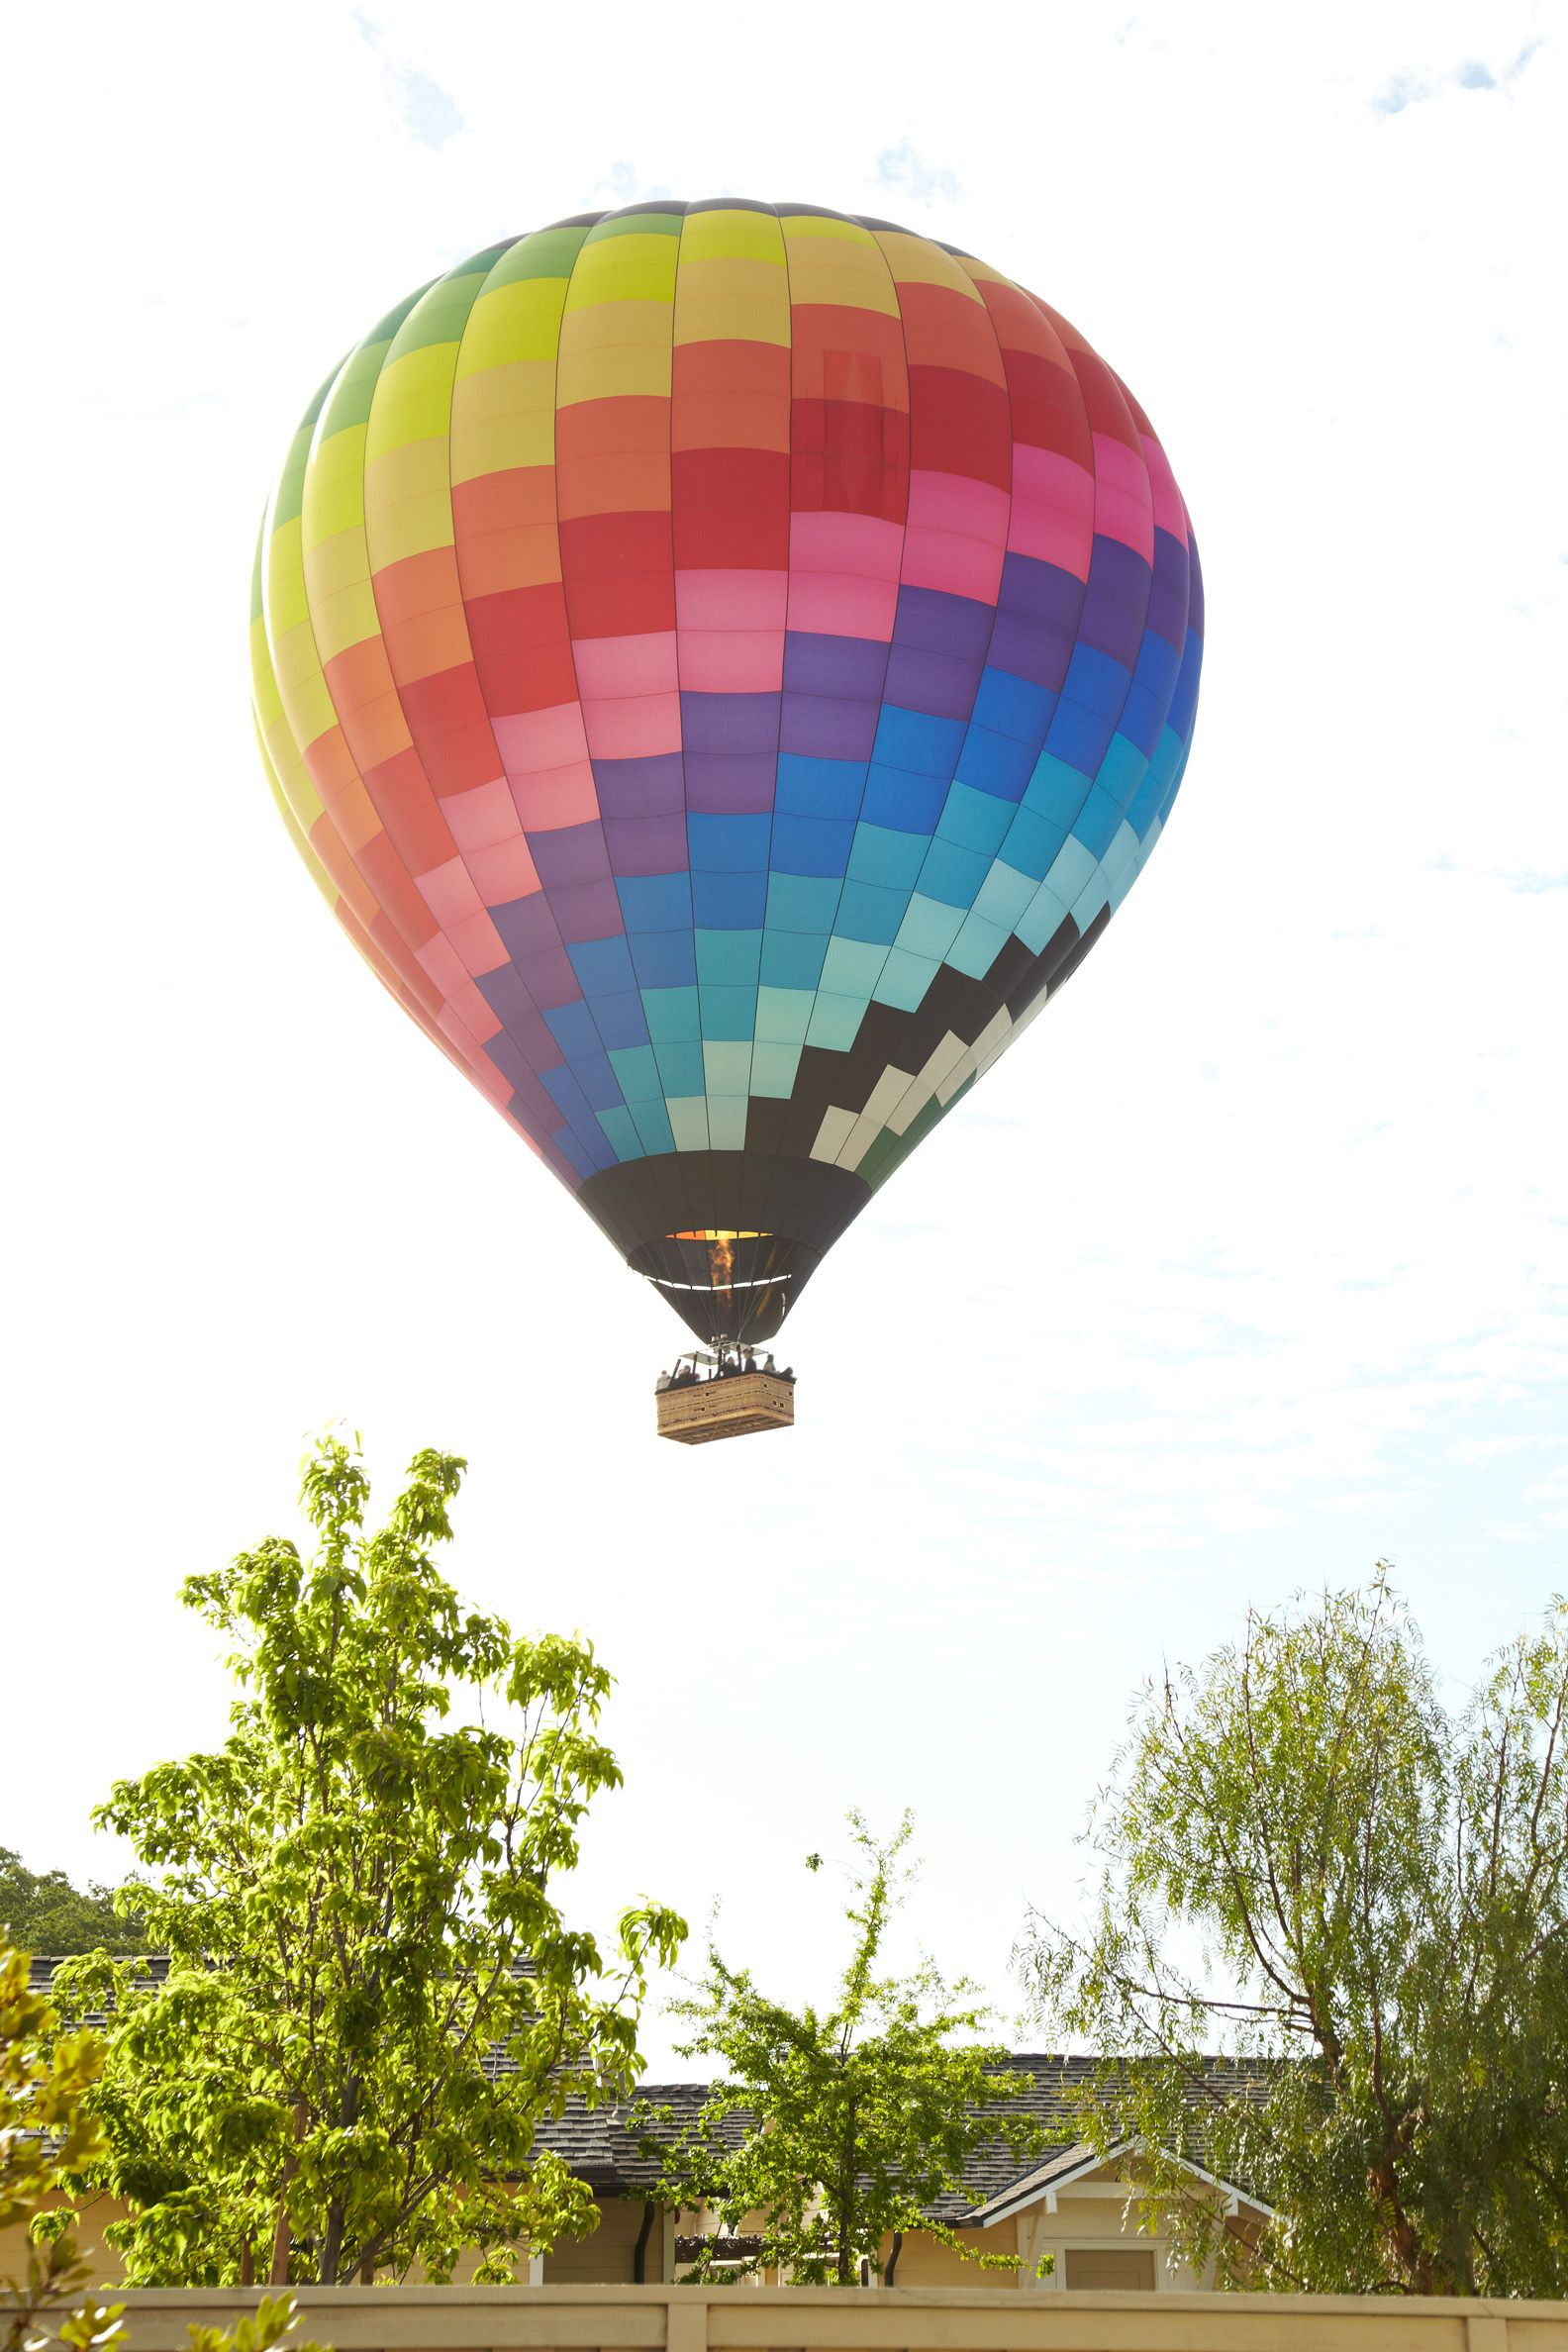 Take a hot air balloon ride above the beautiful vineyards